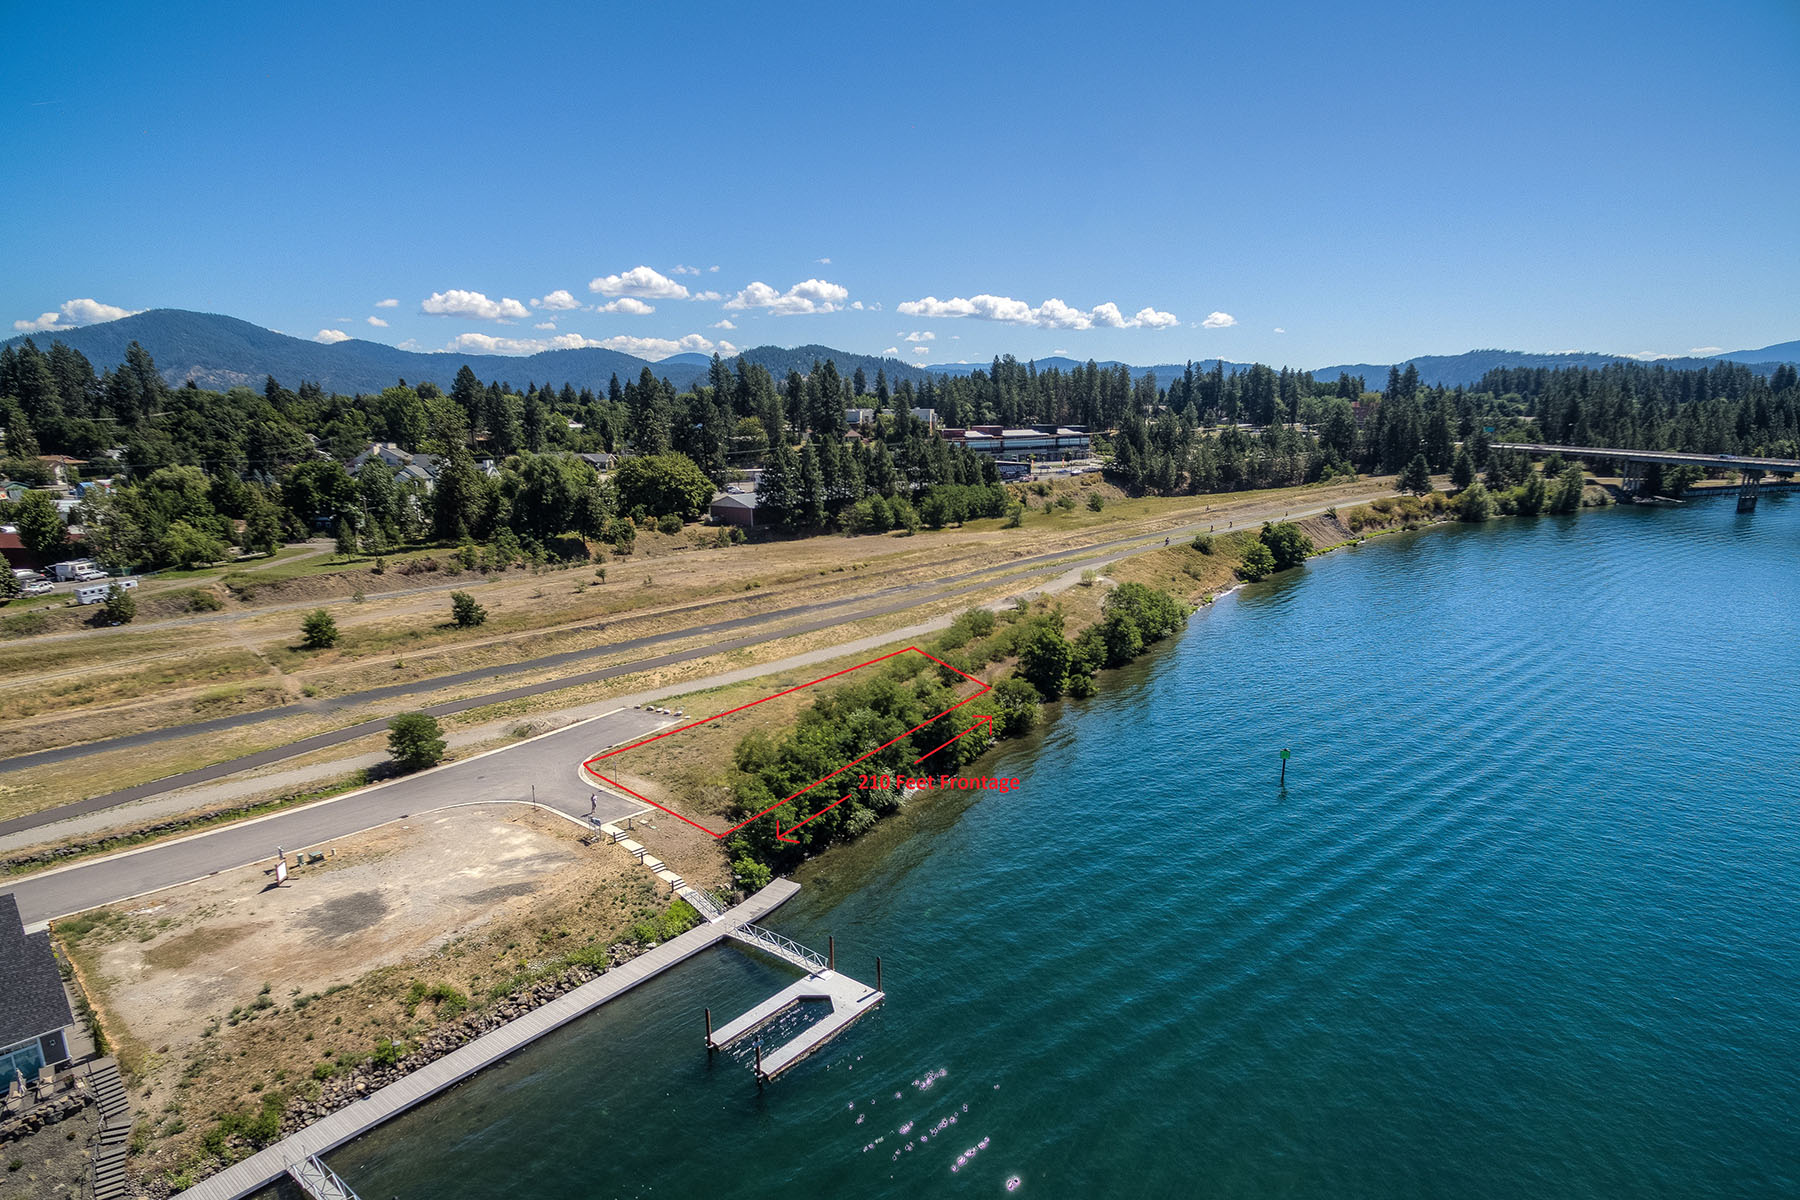 Land for Sale at Stunning MultiFamily Waterfront Land L1 Blk1 Bellerive 6th Addition Coeur D Alene, Idaho, 83814 United States